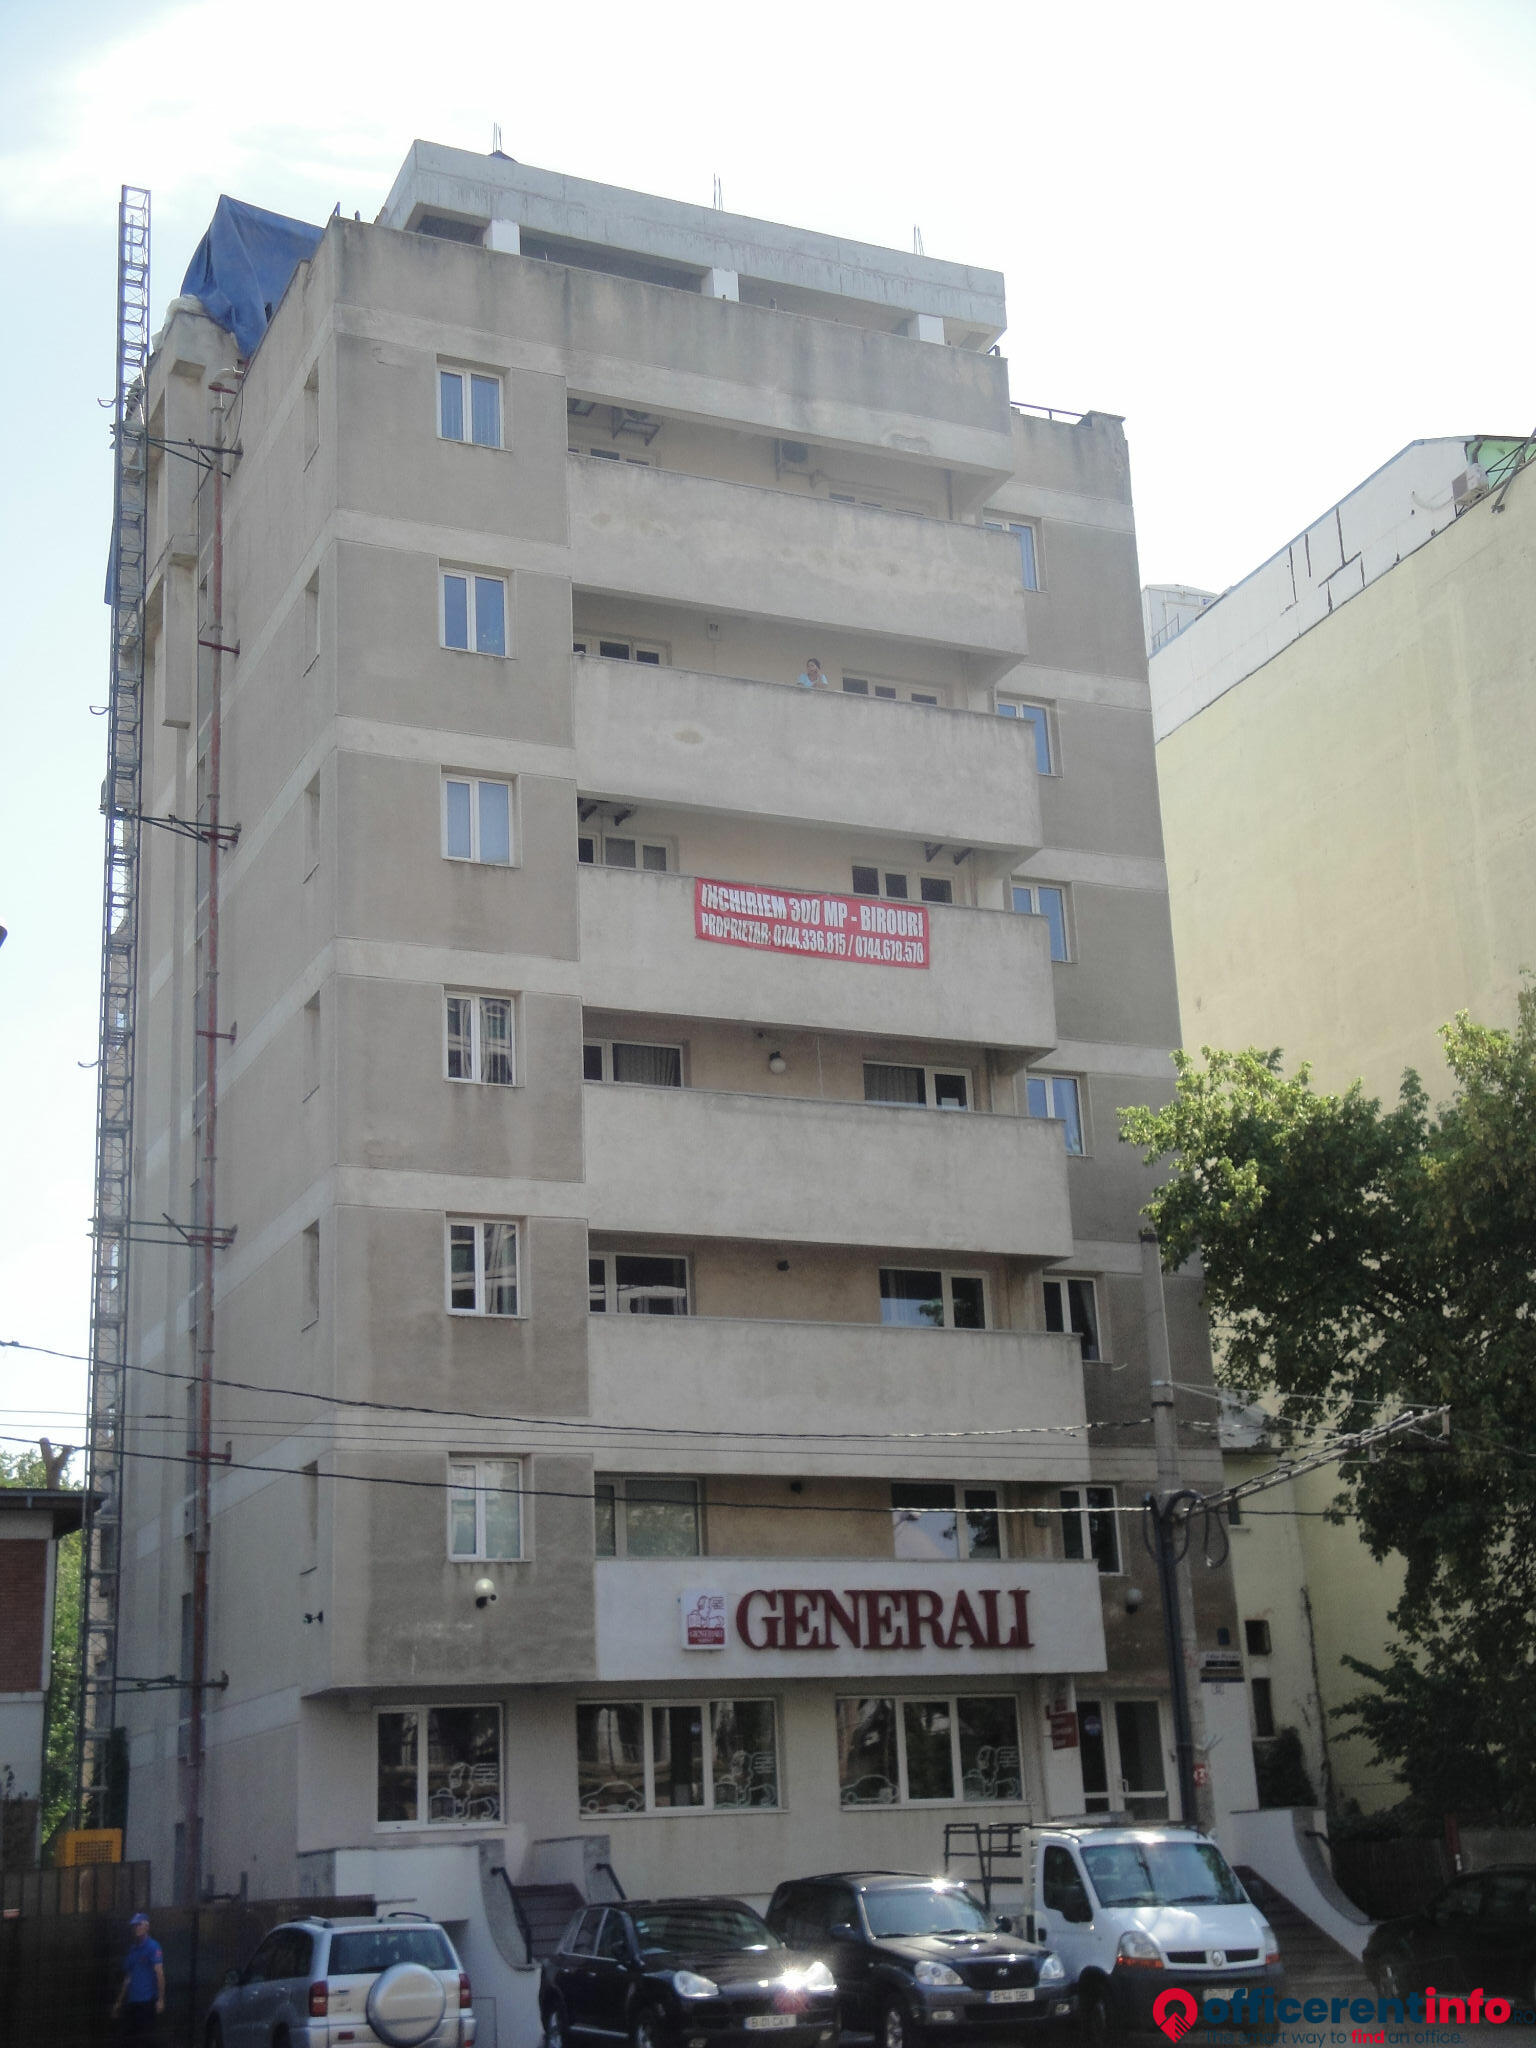 Office For Rent In Generali Calea Plevnei 53 10223 Bucharest